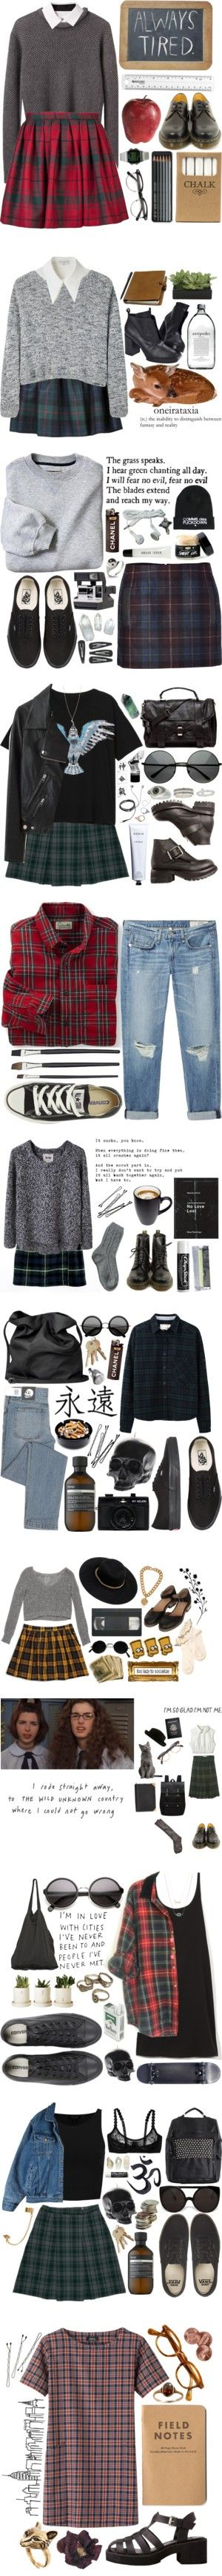 Back to school by dasha-volodina on Polyvore featuring BackToSchool, мода, Jayson Home, Pier 1 Imports, 3.1 Phillip Lim, Timex, Olympia Le-Tan, Alexander Wang, Dr. Martens and Caran D'Ache